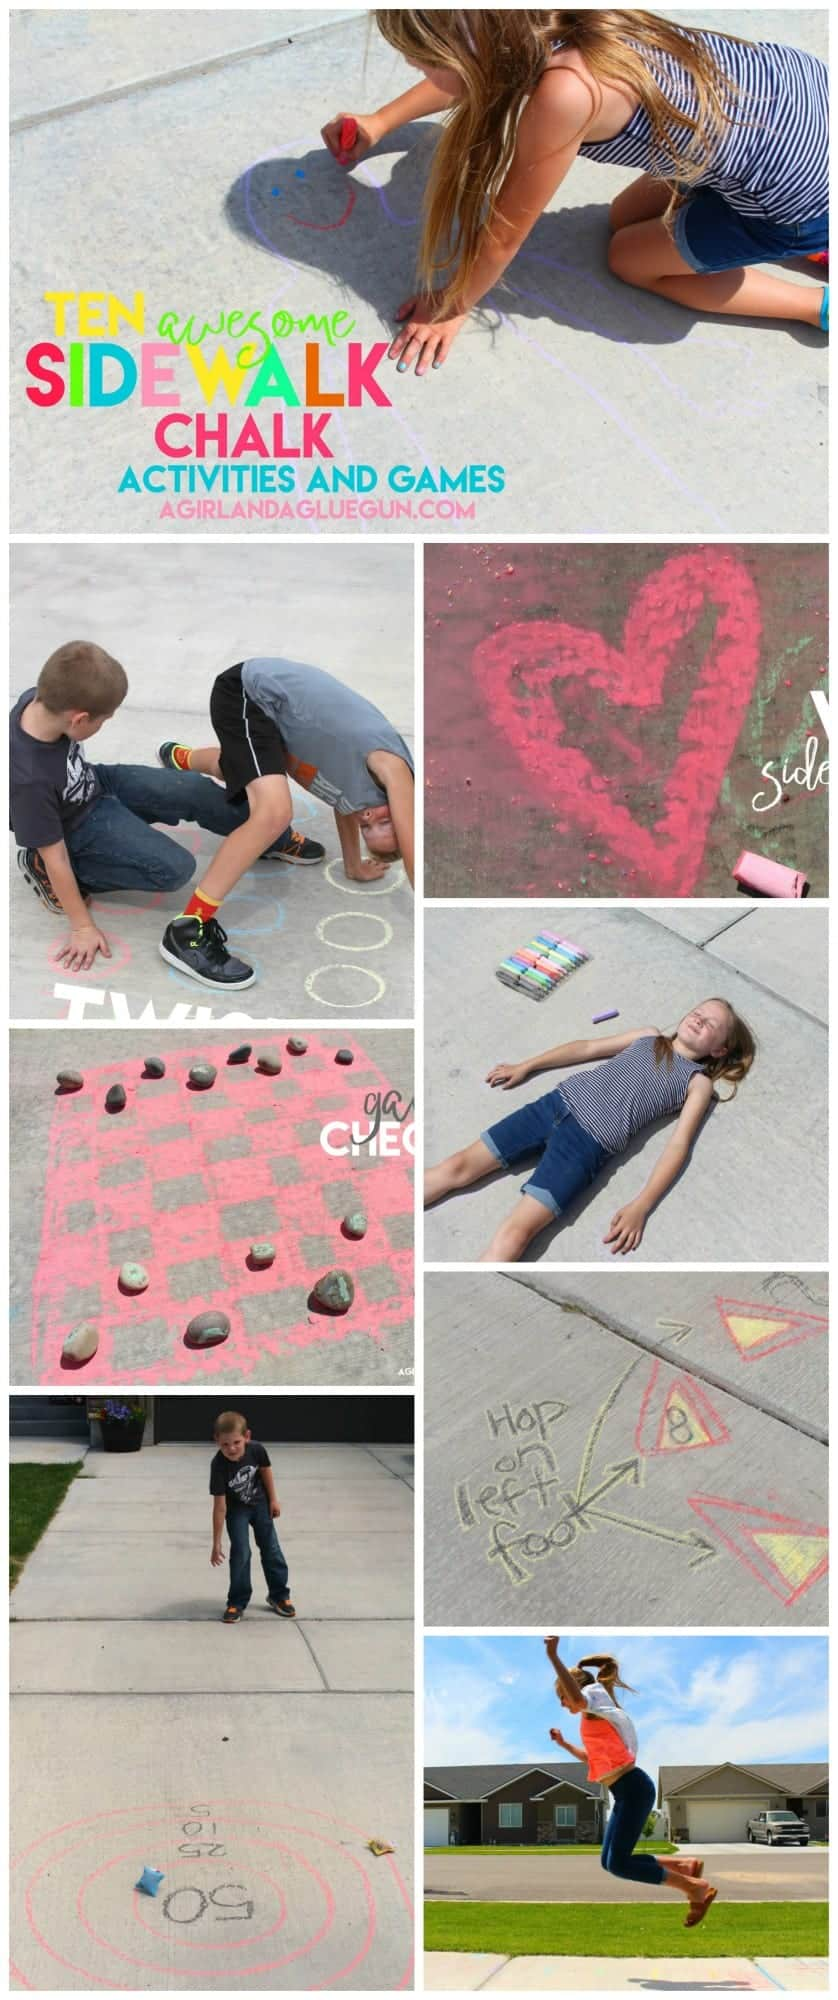 10 Awesomely Fun Sidewalk Chalk Activities